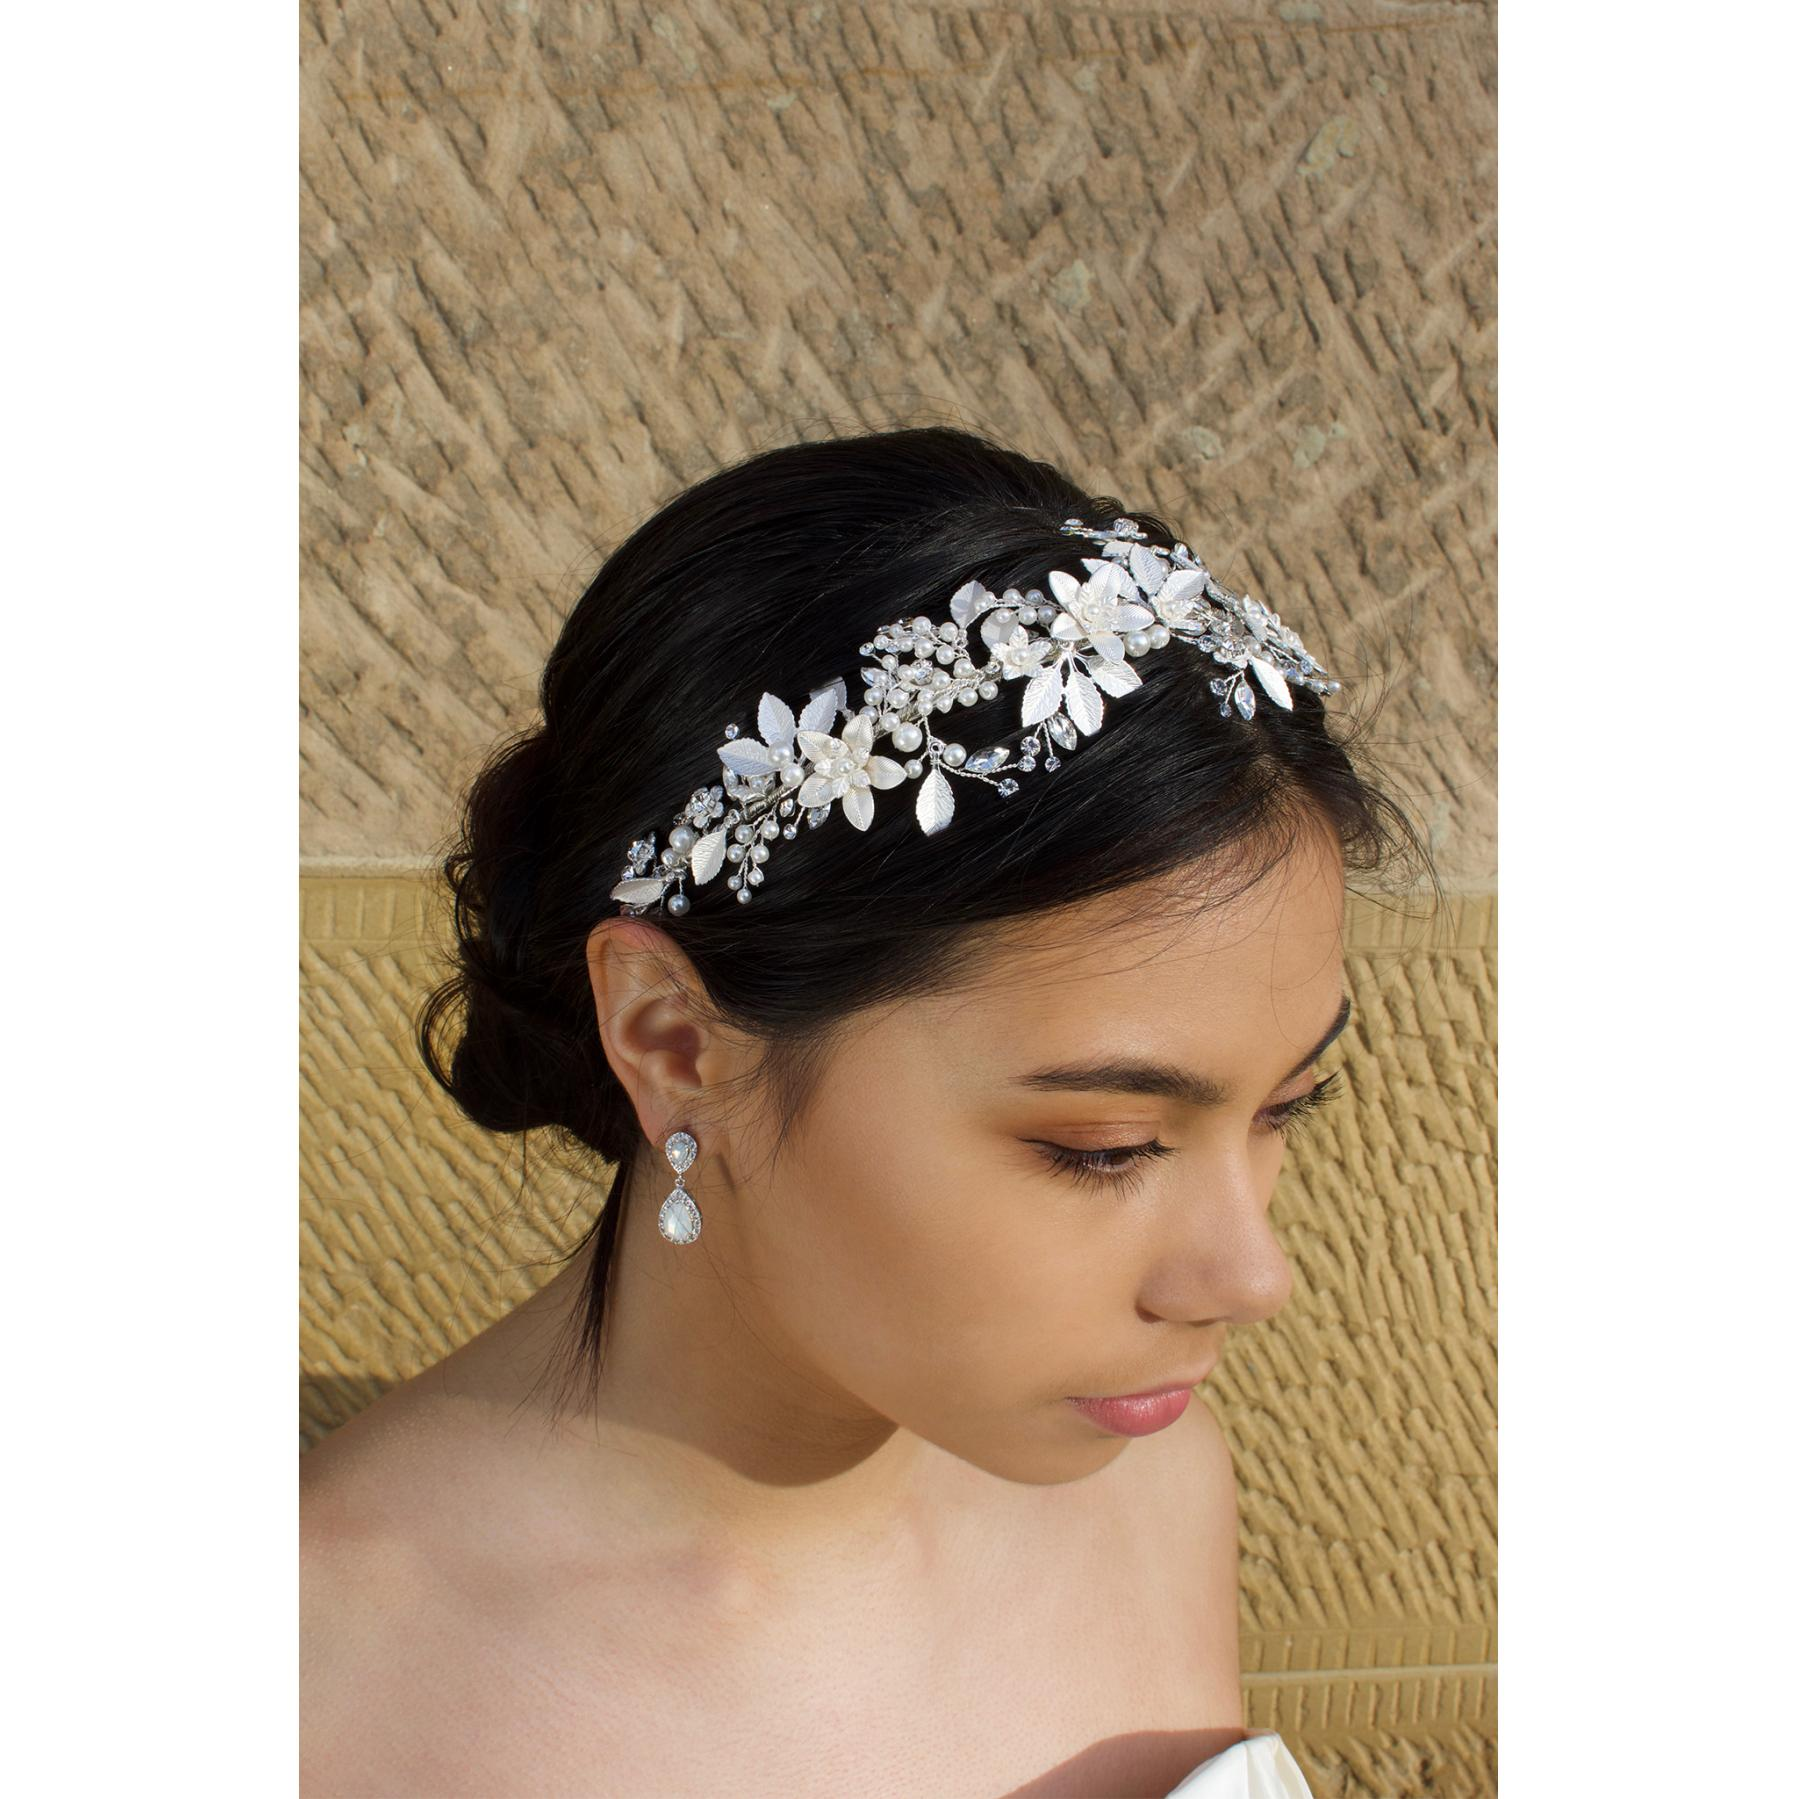 Windsor Maeve Silver Headband - WV203 1